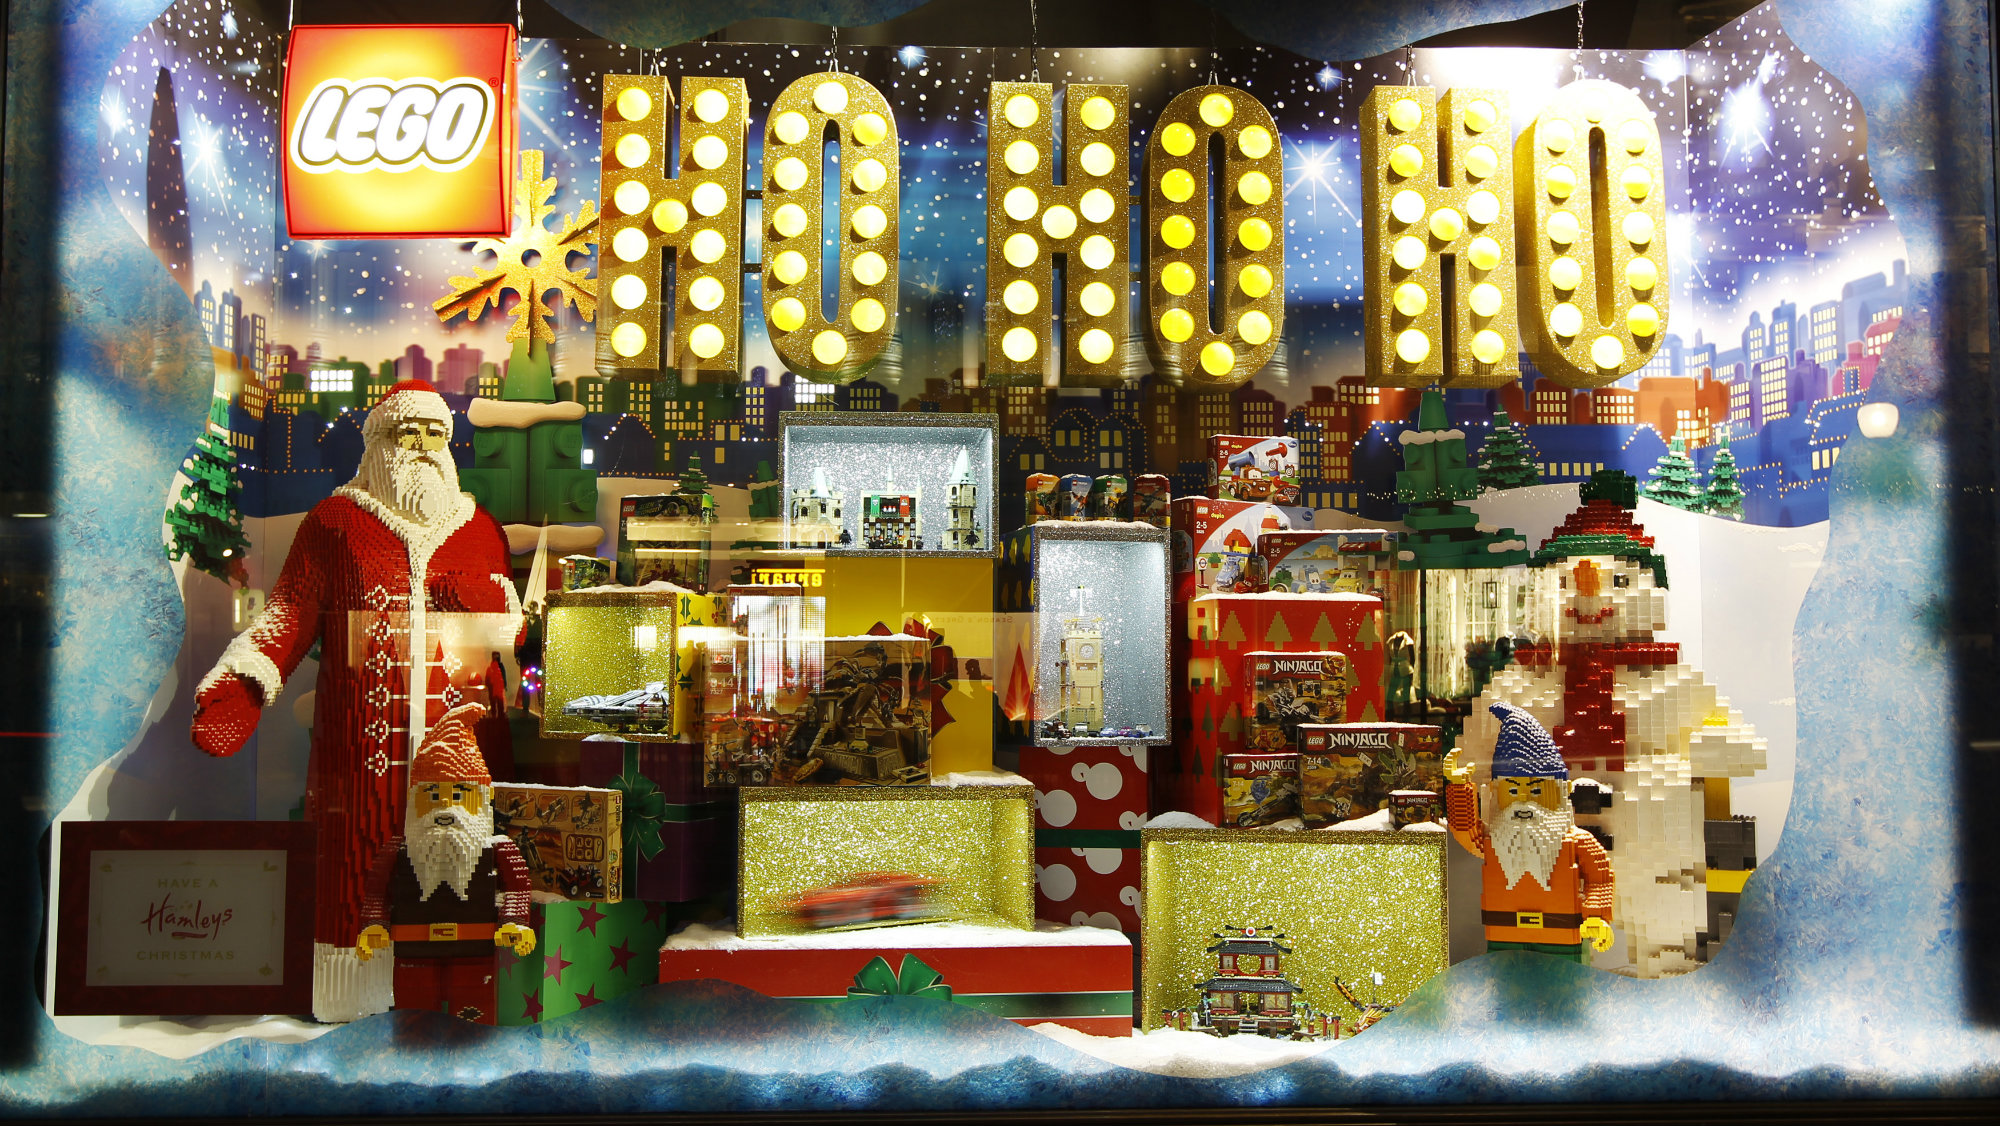 People look at a display of Lego toys in the window of Hamleys toy shop in London, December 2, 2011.